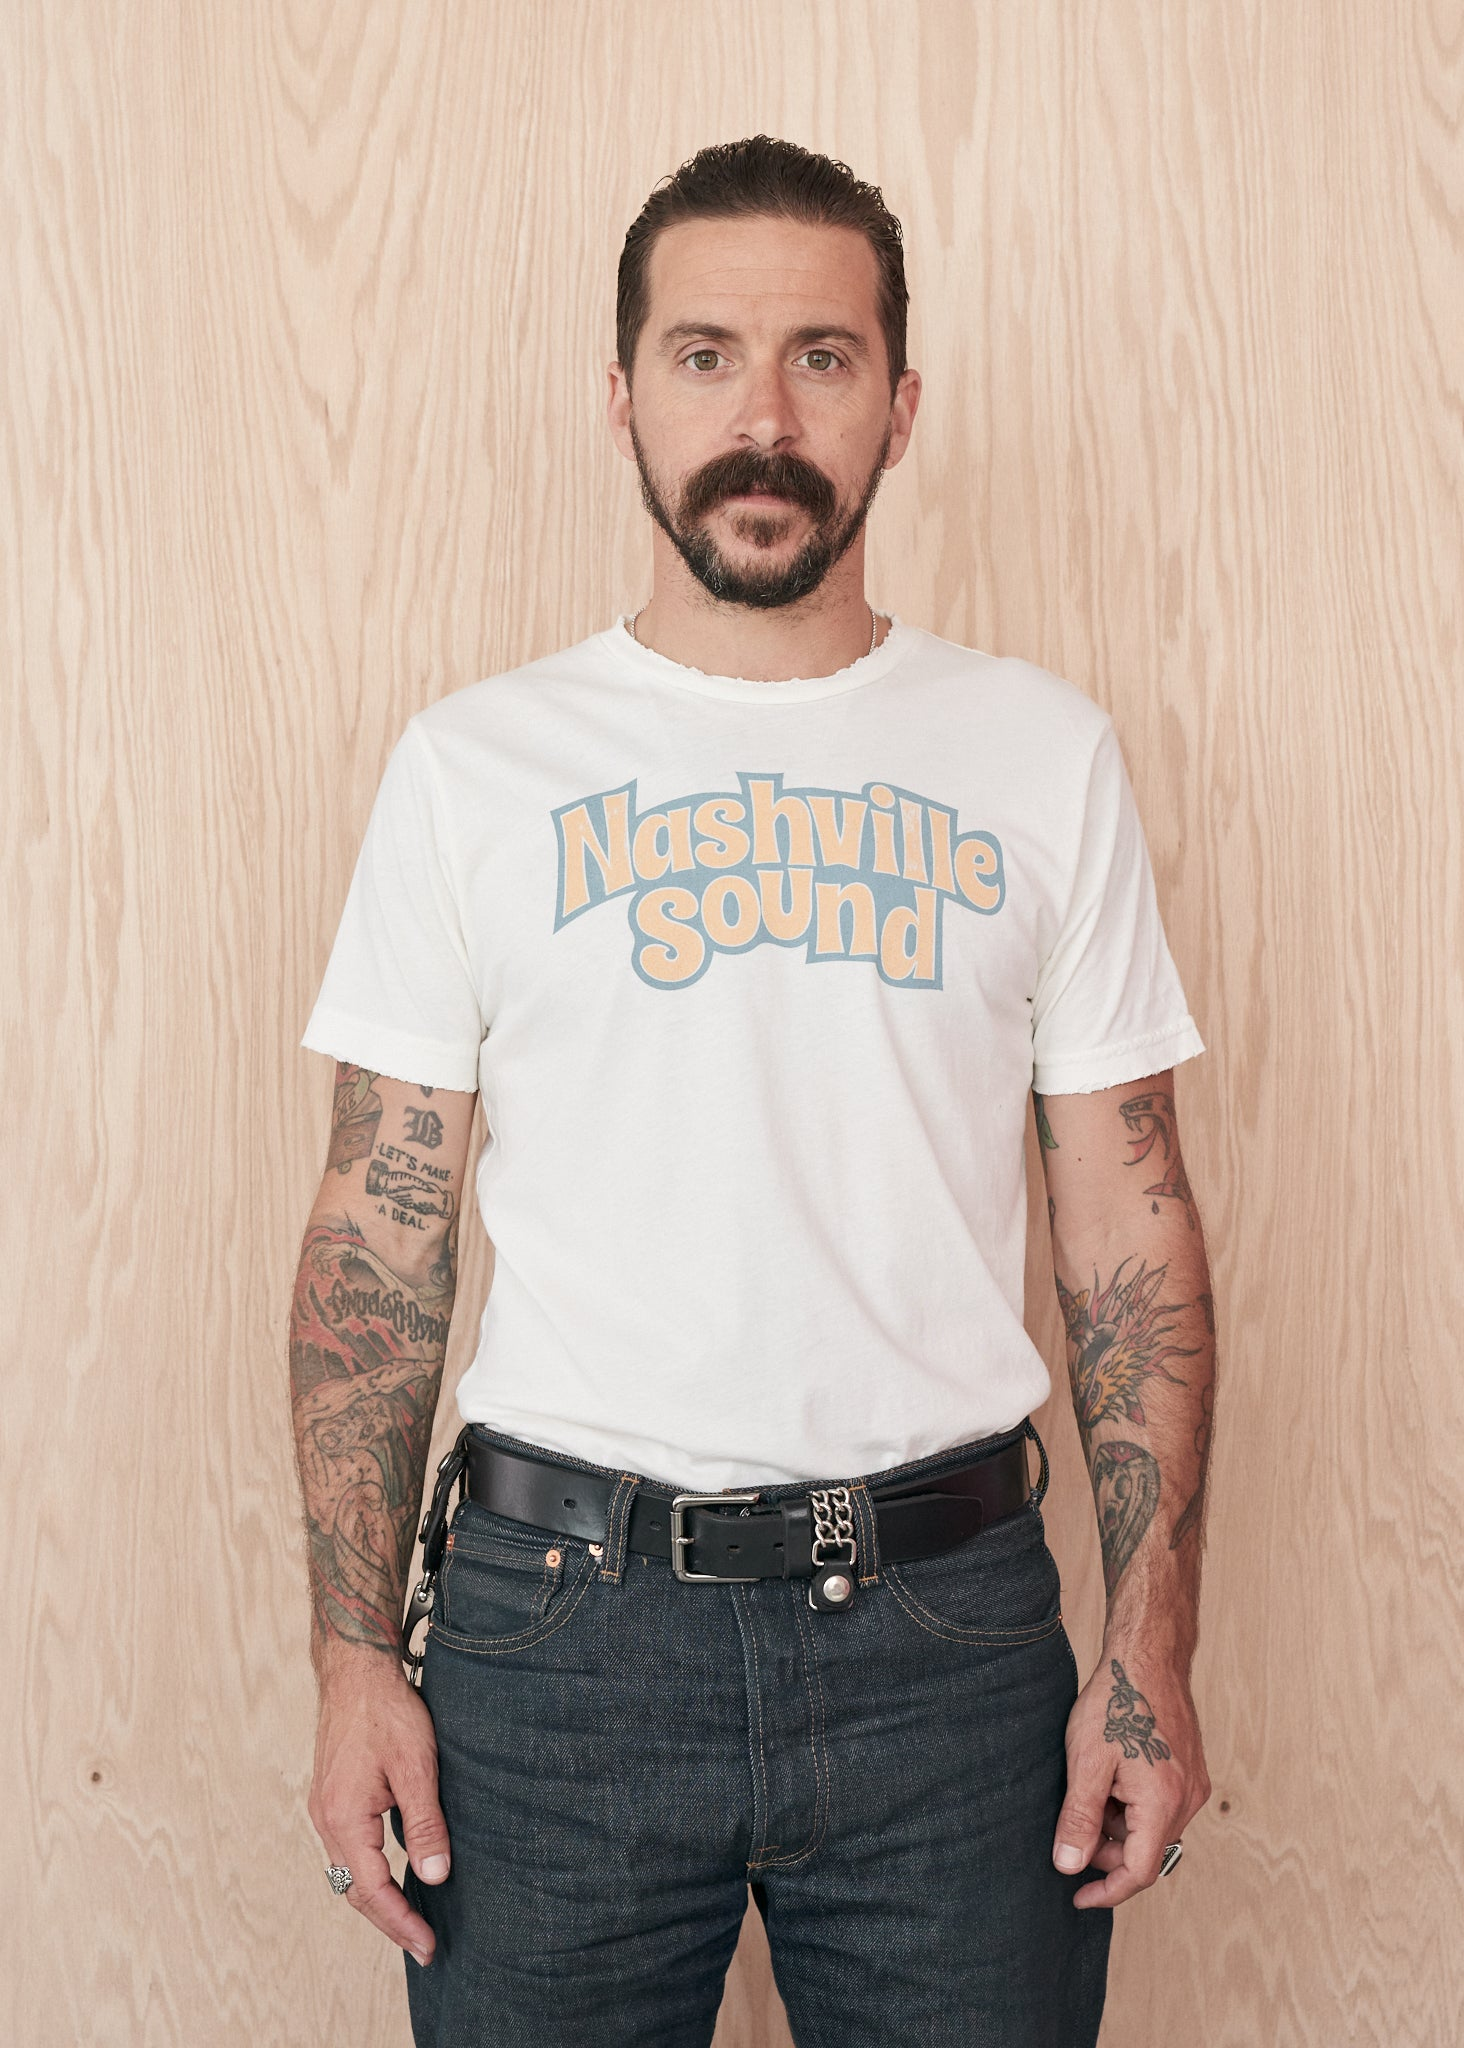 Nashville Sound Men's Tee Shirt - Coconut Cream - Men's Tee Shirt - Midnight Rider